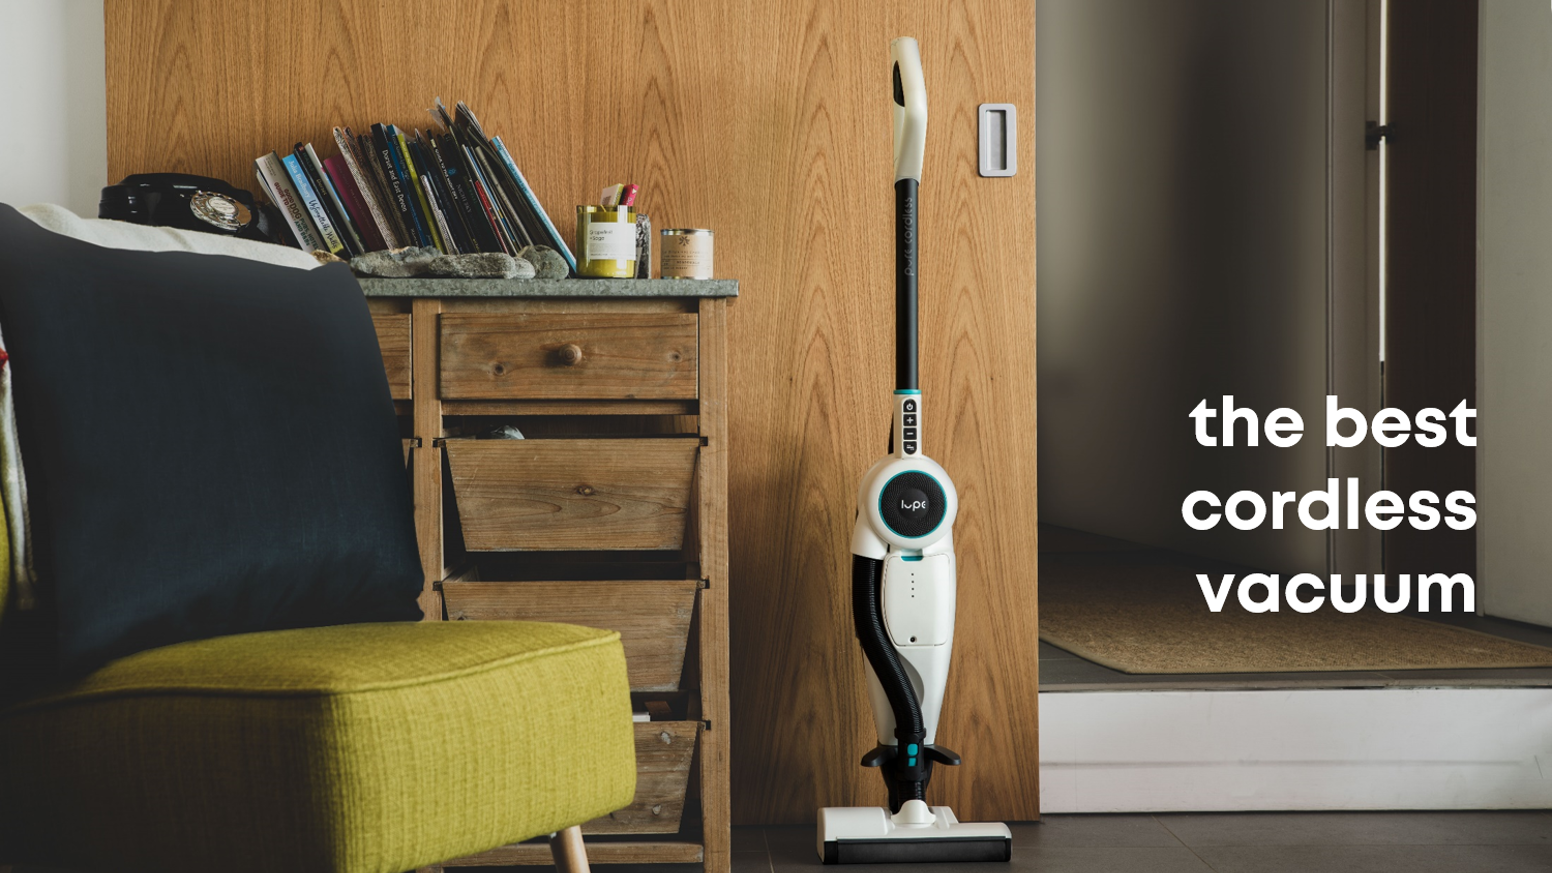 Biggest Ever Crowdfunded Vacuum Cleaner. Created by former Dyson experts. Patented technology. Unrivalled performance. Upgradable design.